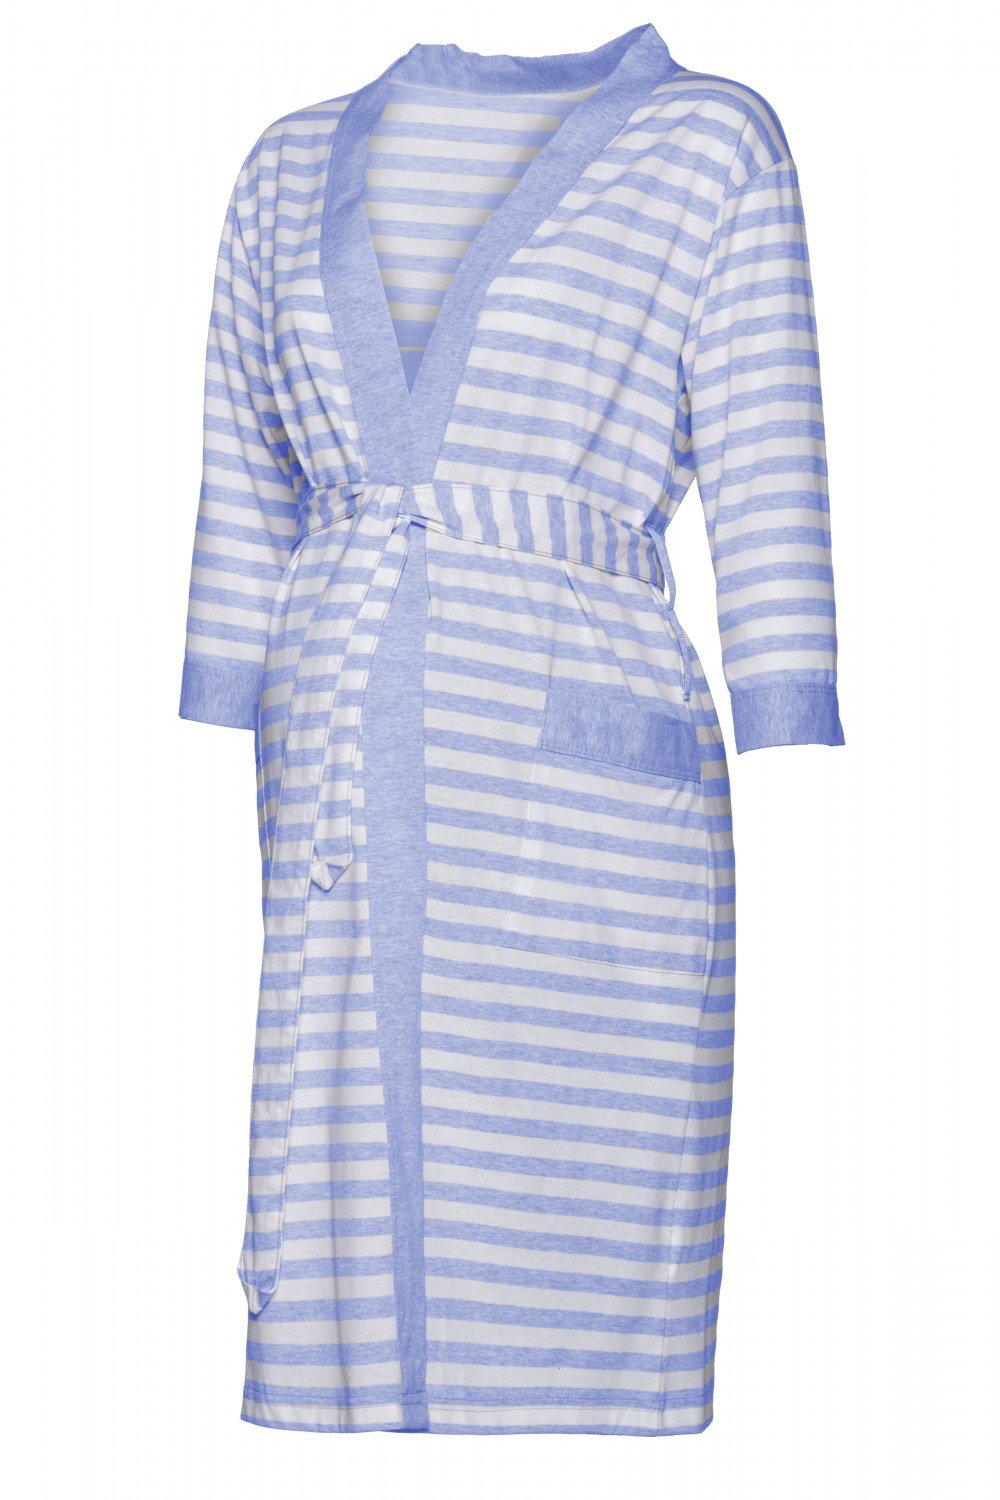 Happy Mama Women's Maternity Top Nursing Pyjamas and Robe Sold Separately. 394p (Robe - Light Blue, US 12/14, 2XL)